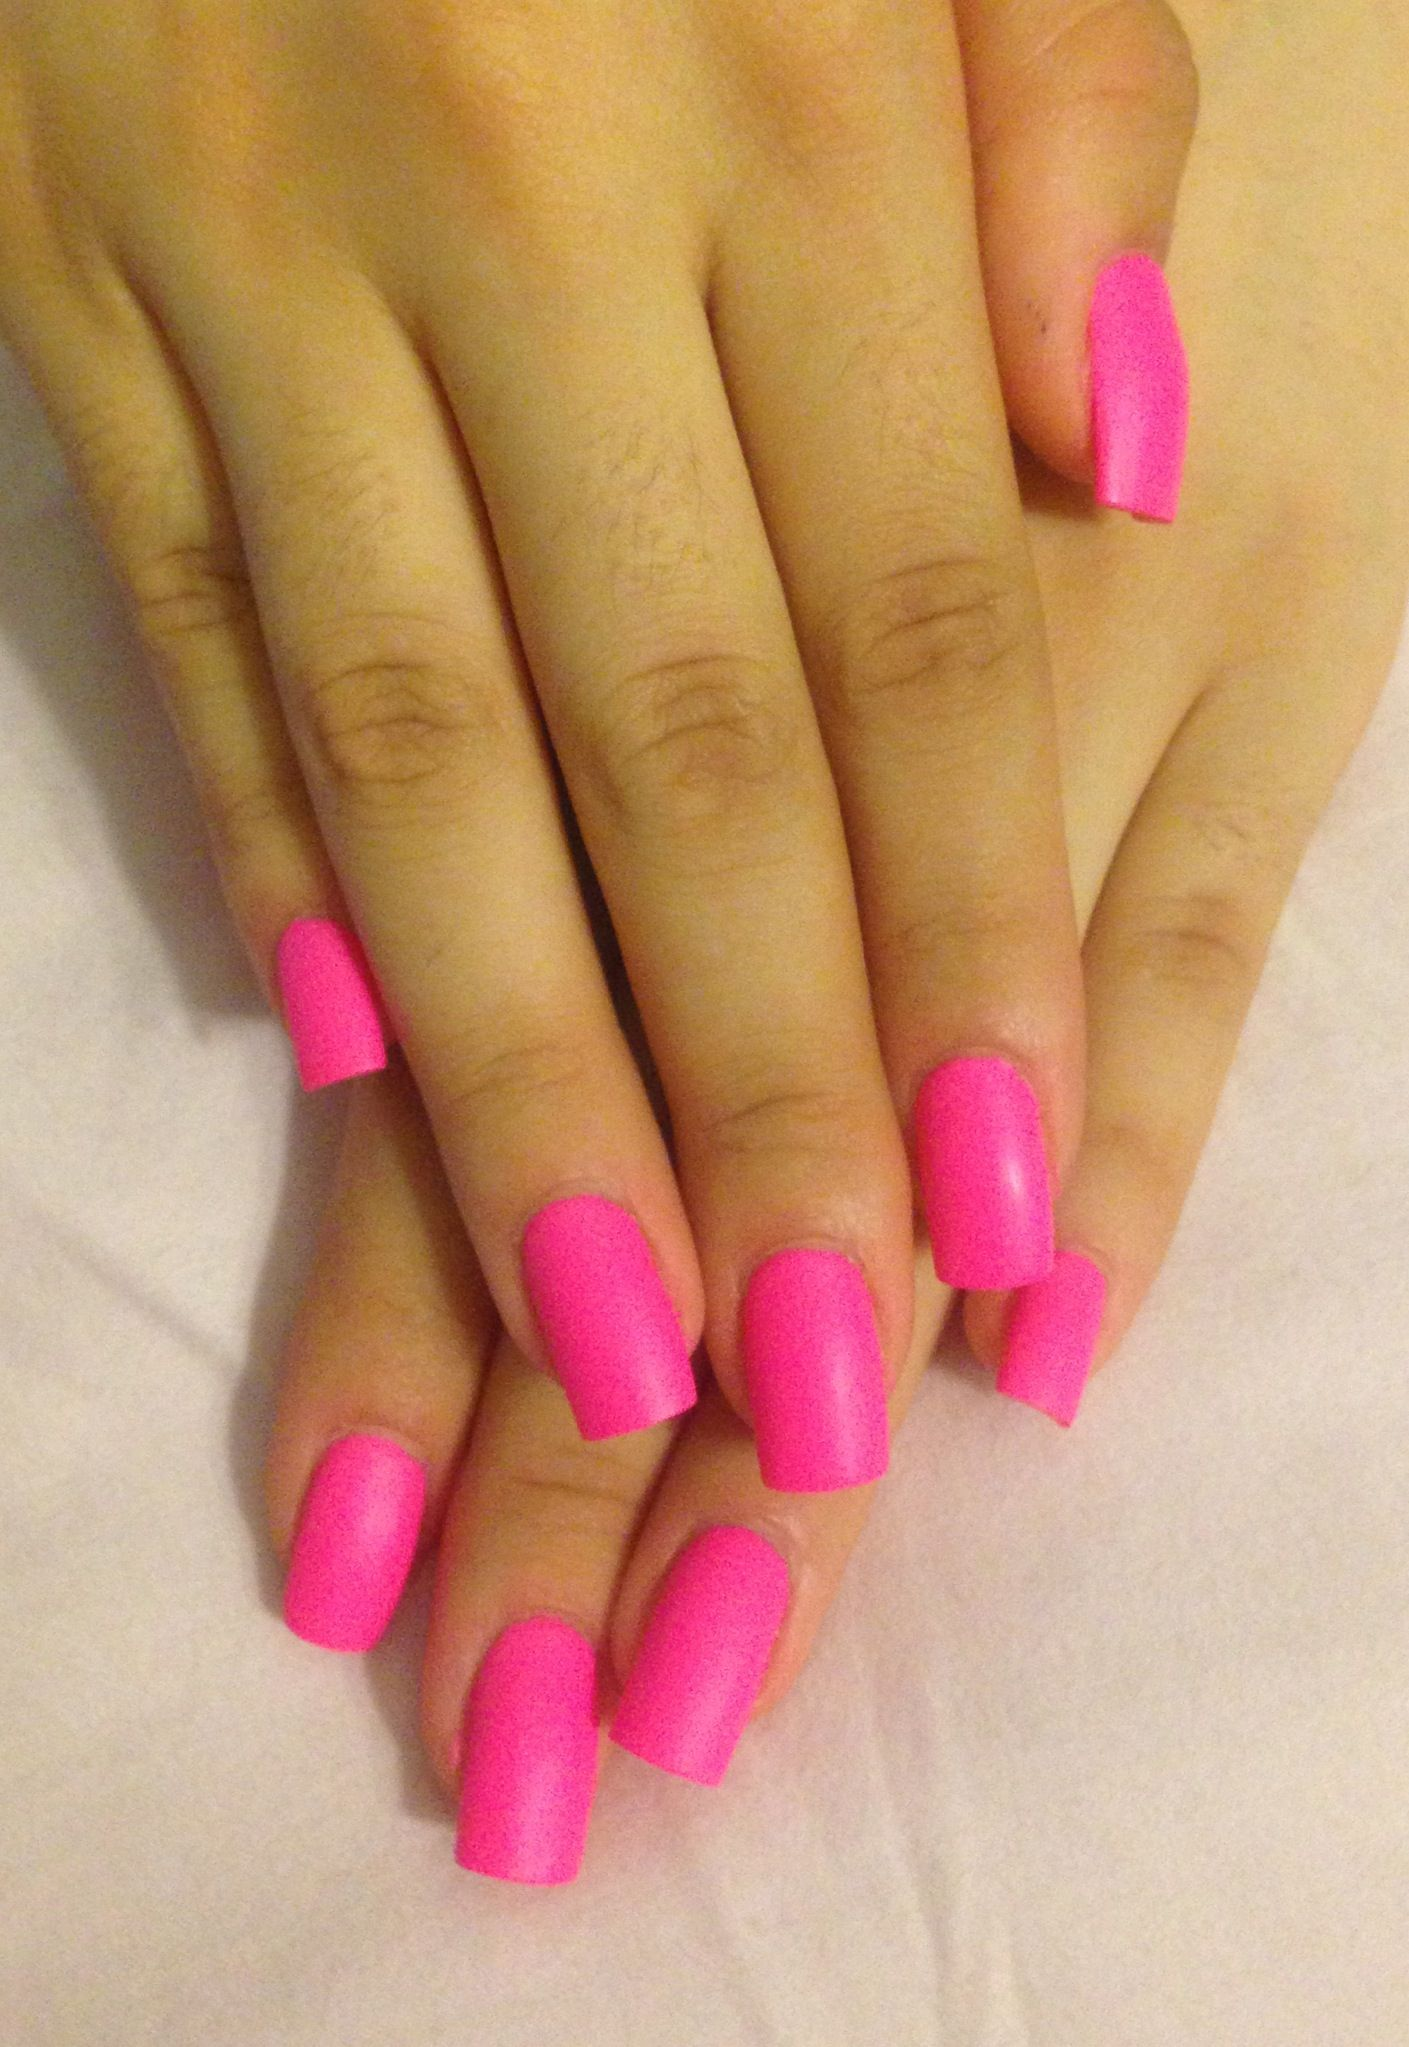 I never ever ever do pink nails but this matte pink.. I would probably try it if it were in front of me.